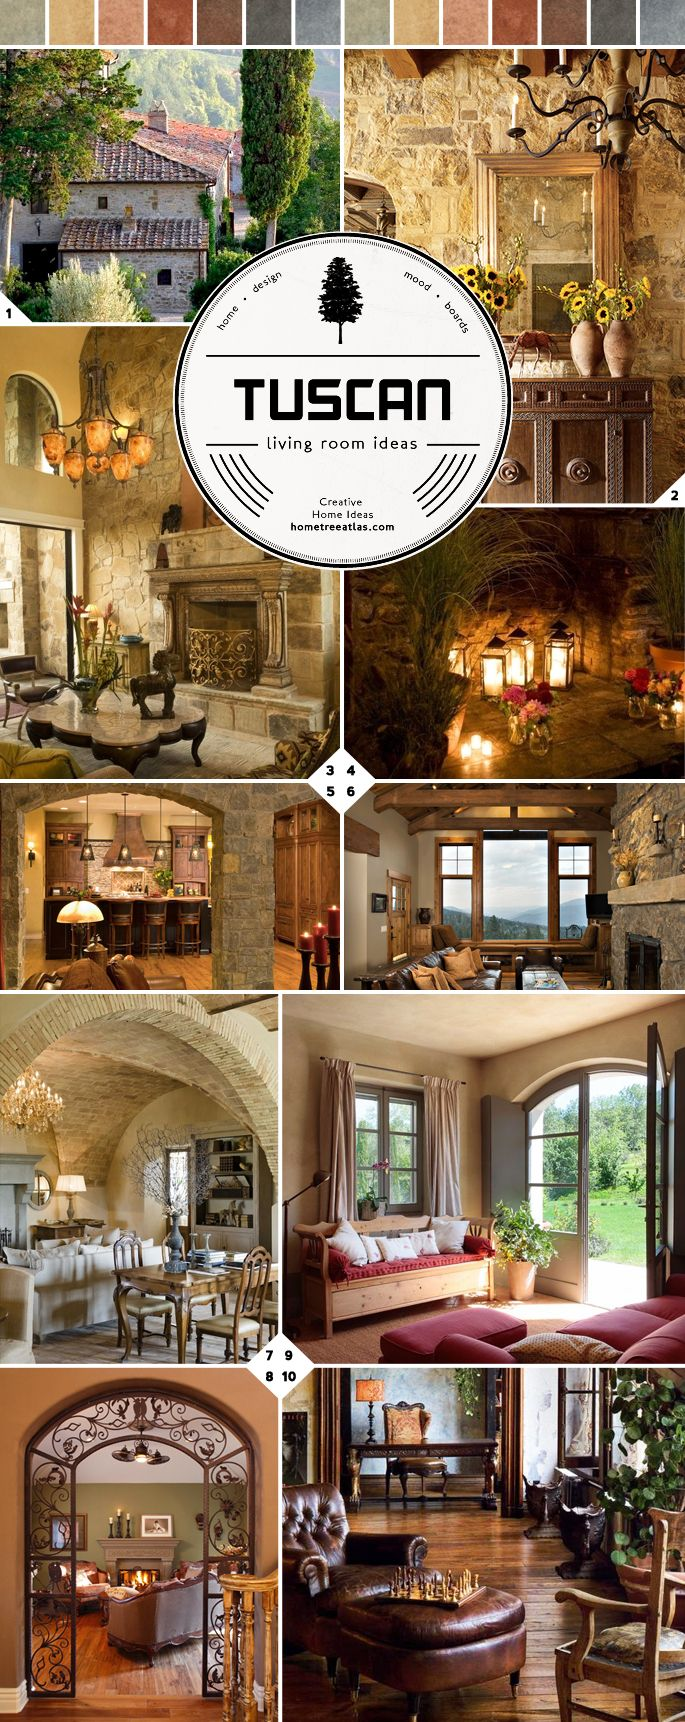 From Italy: Tuscan Living Room Ideas - Home Tree Atlas